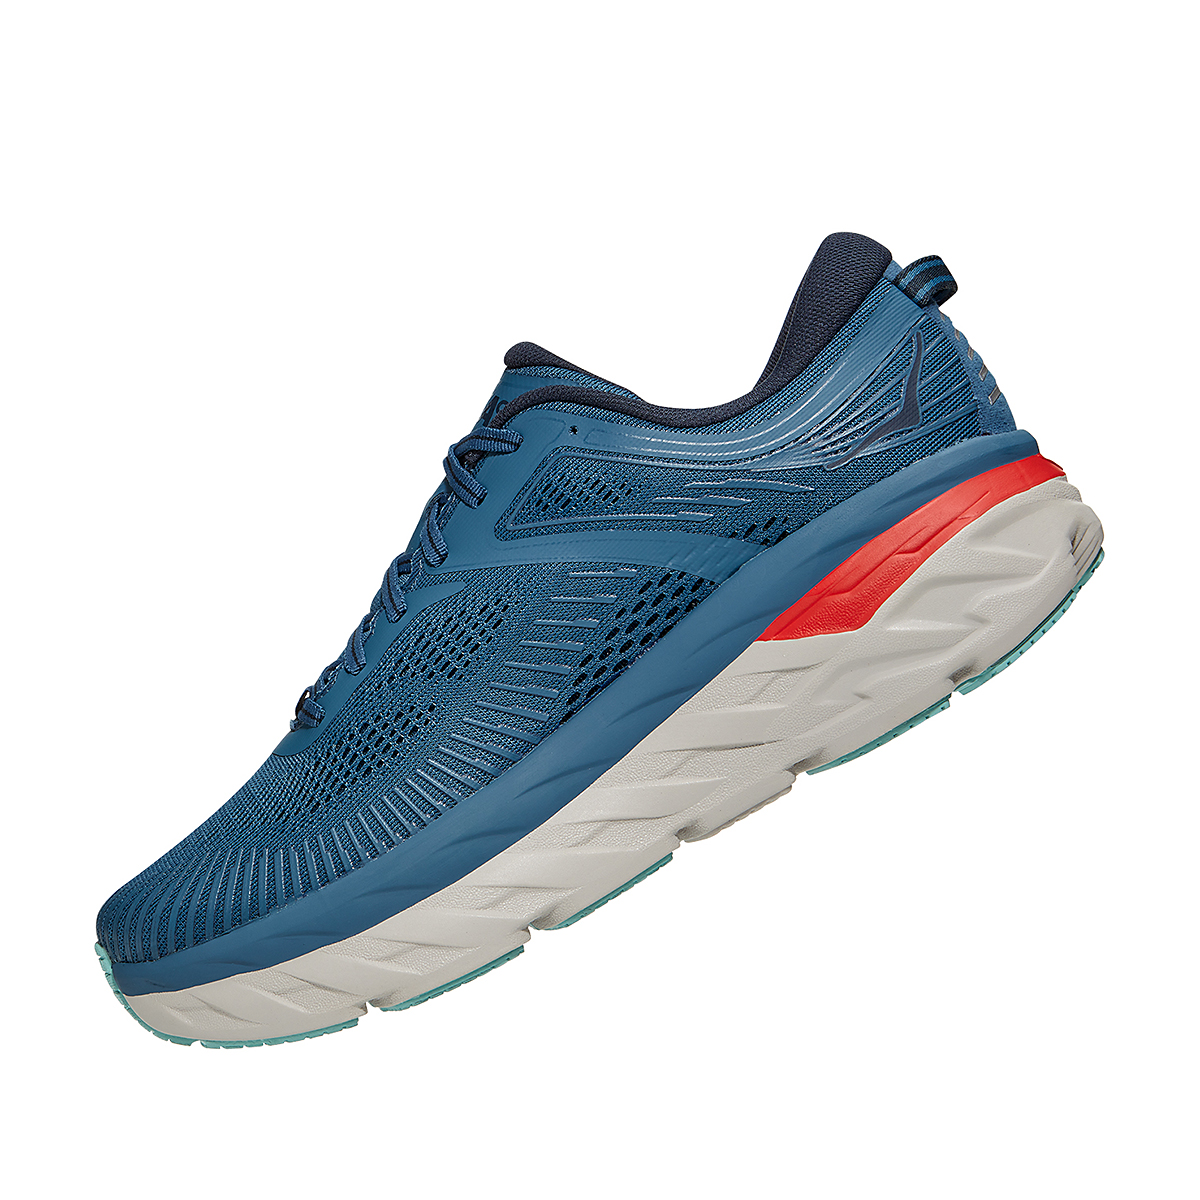 Men's Hoka One One Bondi 7 Running Shoe - Color: Real Teal/Outer Space - Size: 7 - Width: Regular, Real Teal/Outer Space, large, image 3